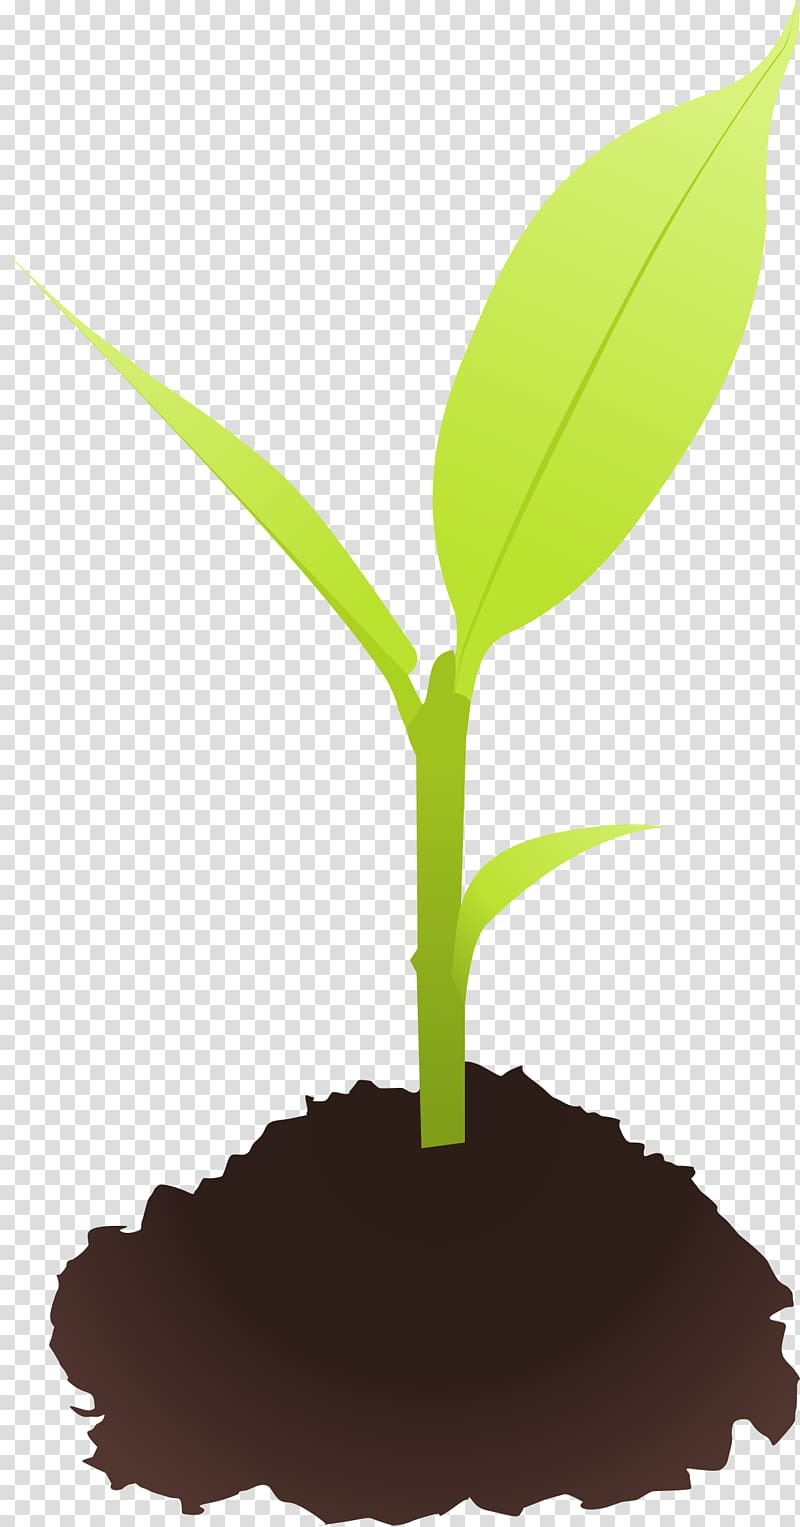 Sprouting plant transparent background. Seedling clipart coconut seed